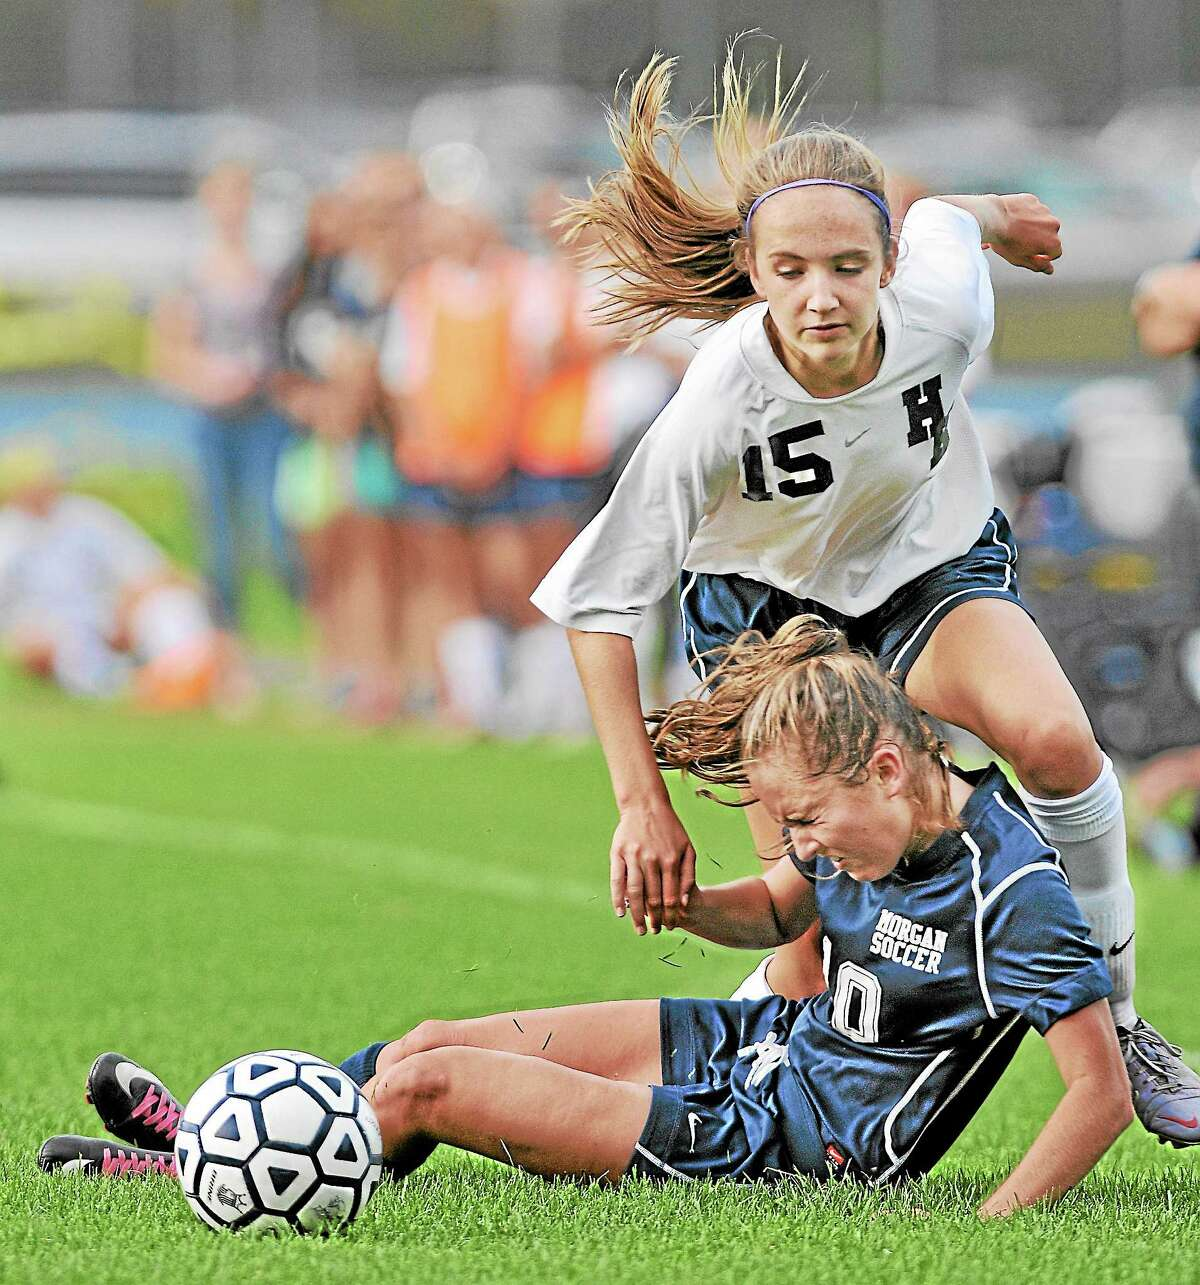 Haddam-Killingworth's Emma Martone battles Morgan's Savannah Skidmore in Thursday's Shoreline Conference game in Higganum. The Cougars defeated the Huskies 4-2. All goals were scored in the second half of Thursday's game.